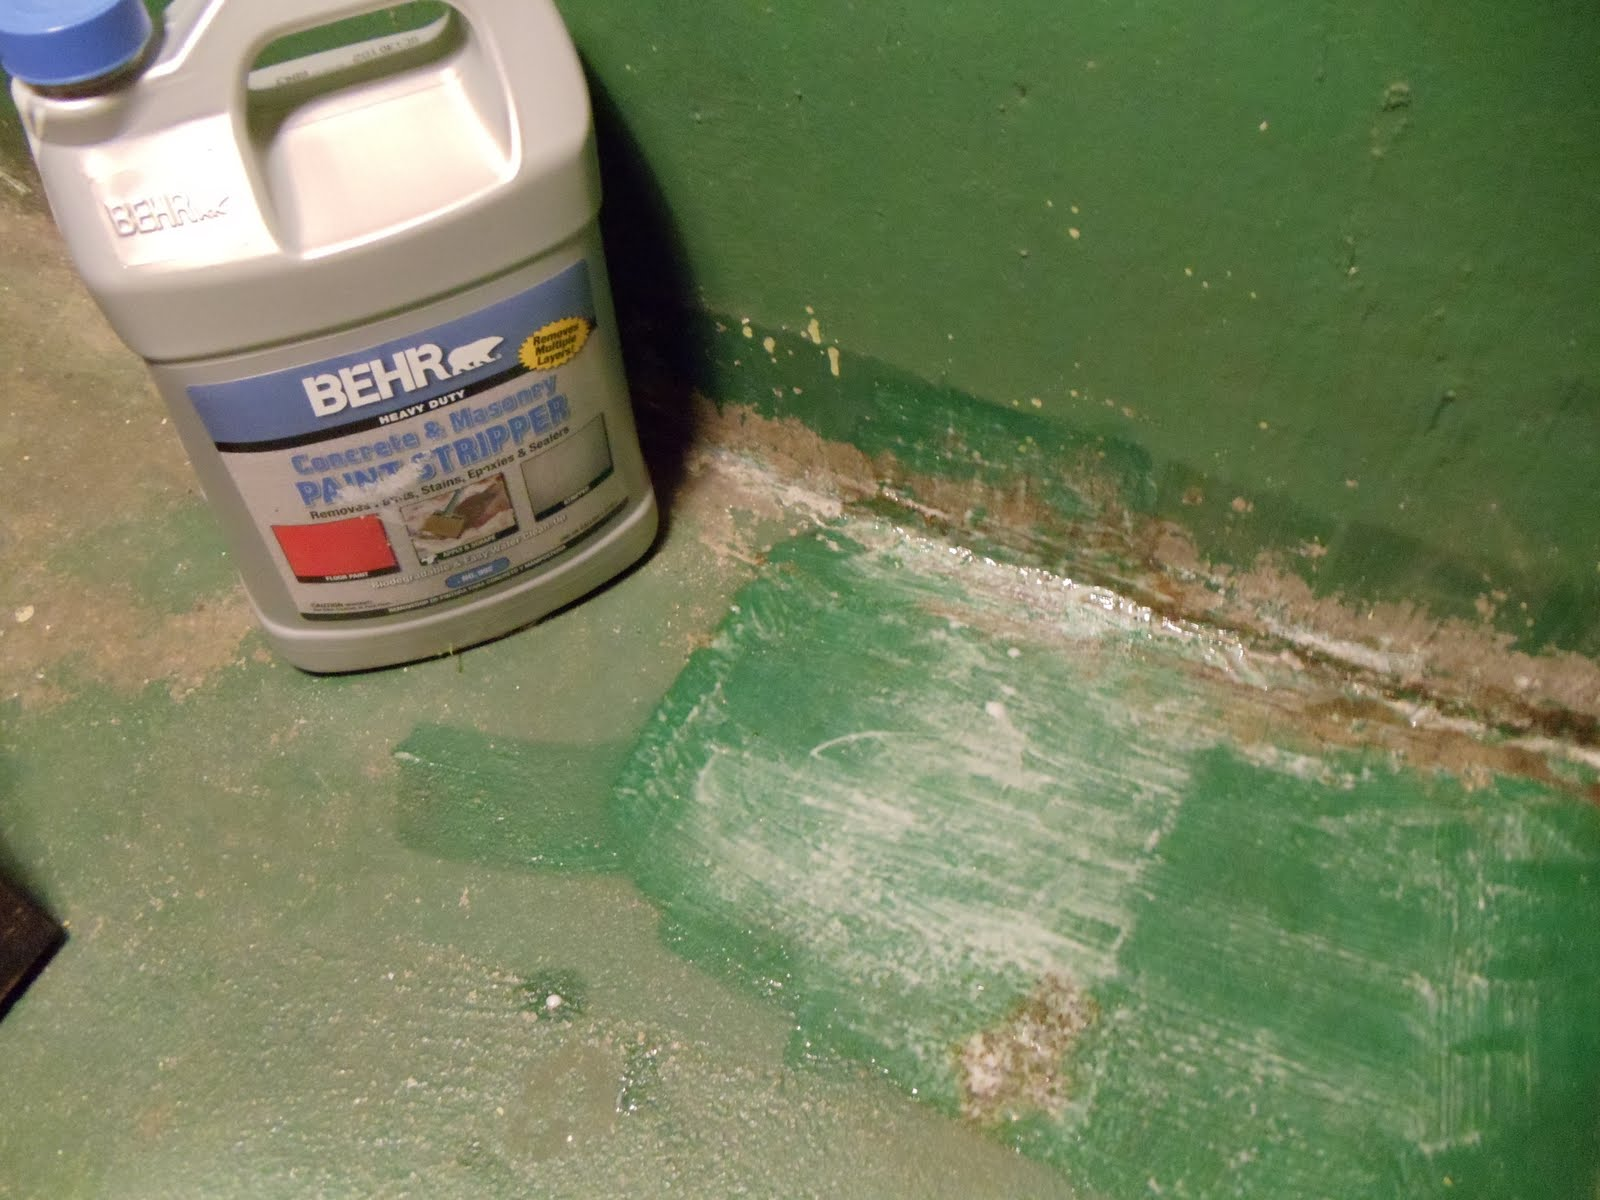 Sorry, Behr concrete stripper something is